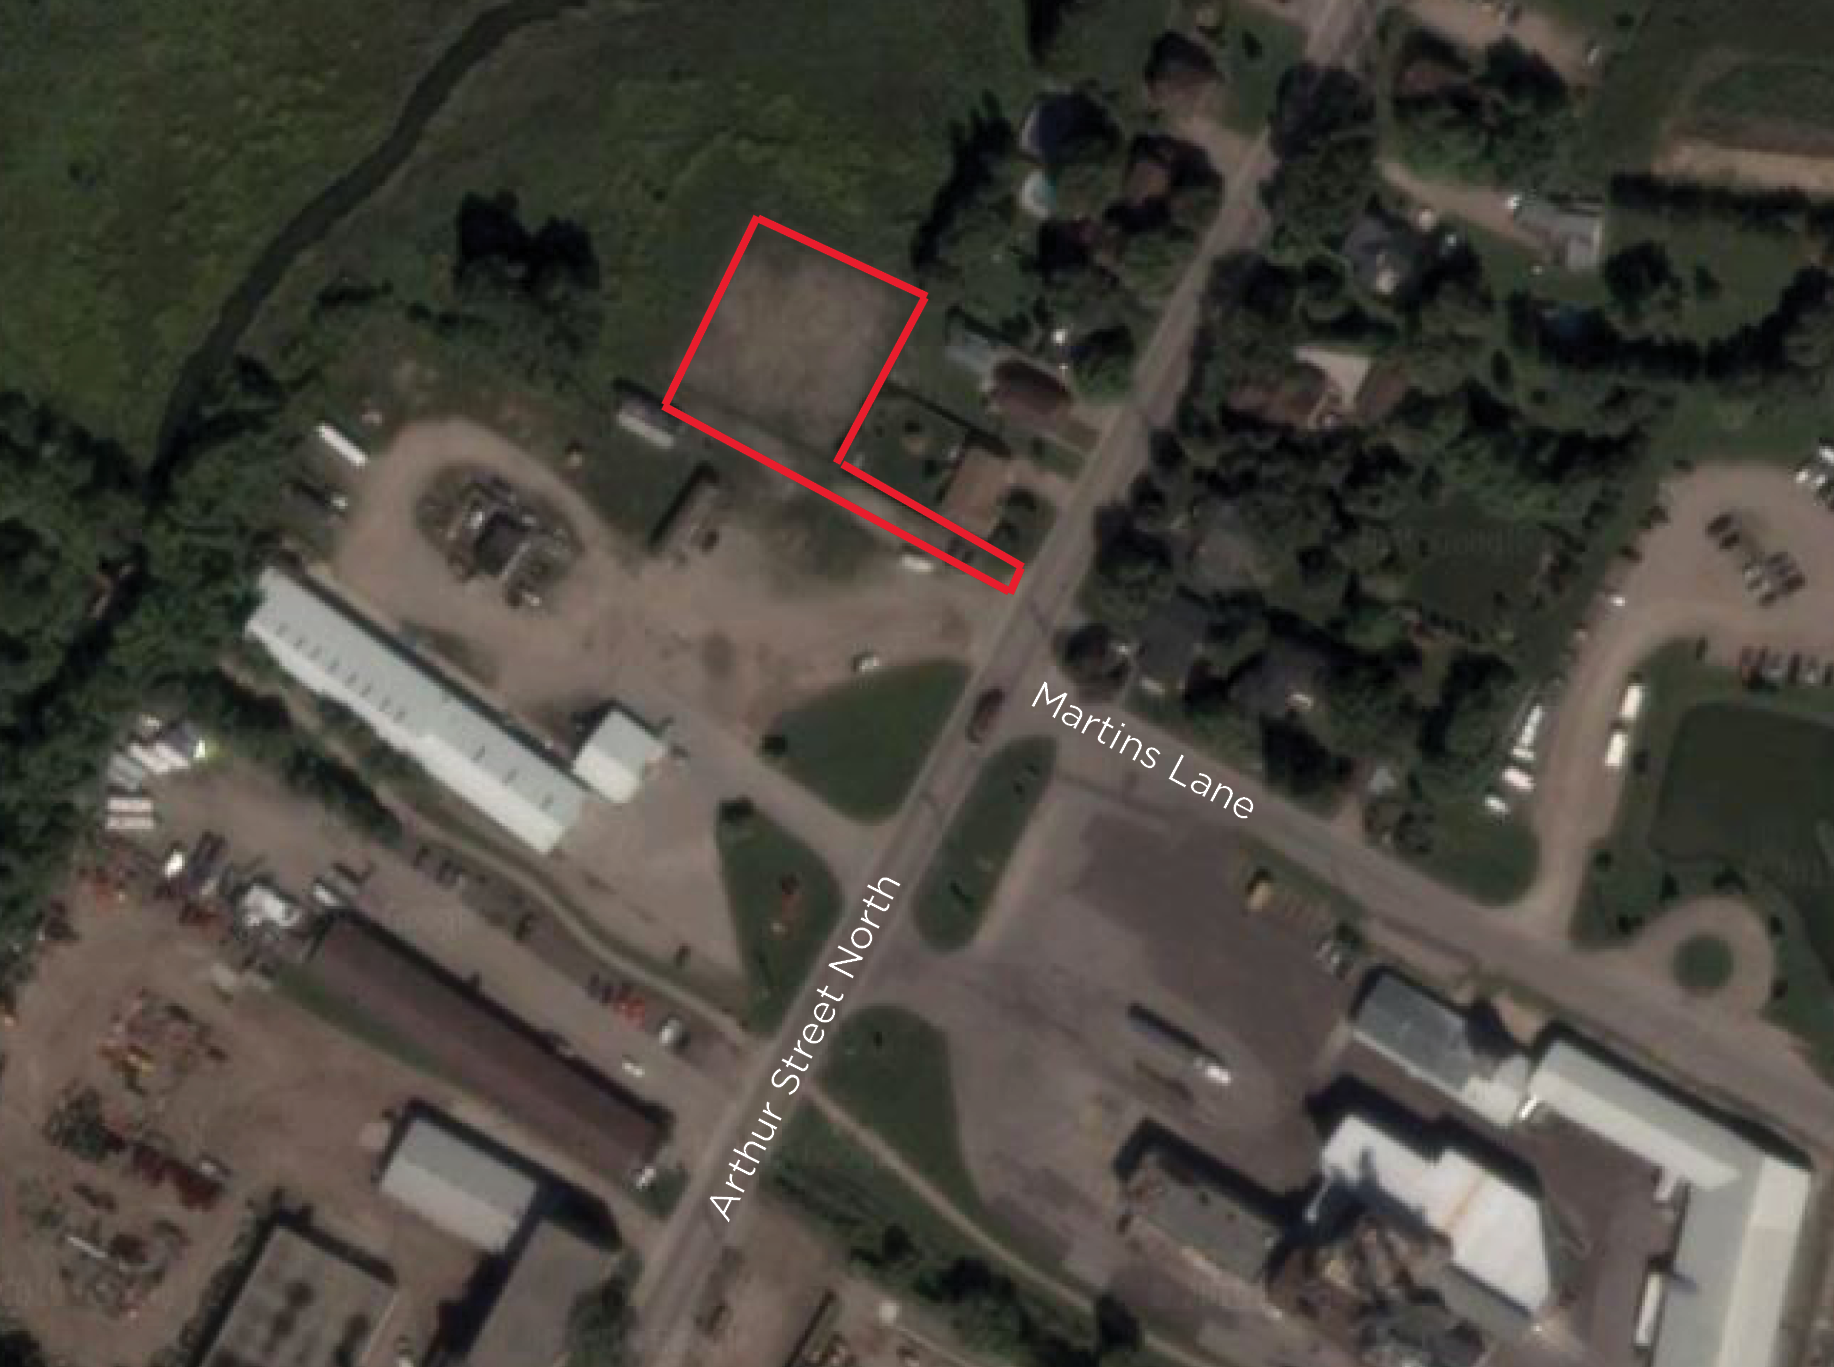 22 Arthur Street North, Elmira | EXCLUSIVE Commercial Land for Sale